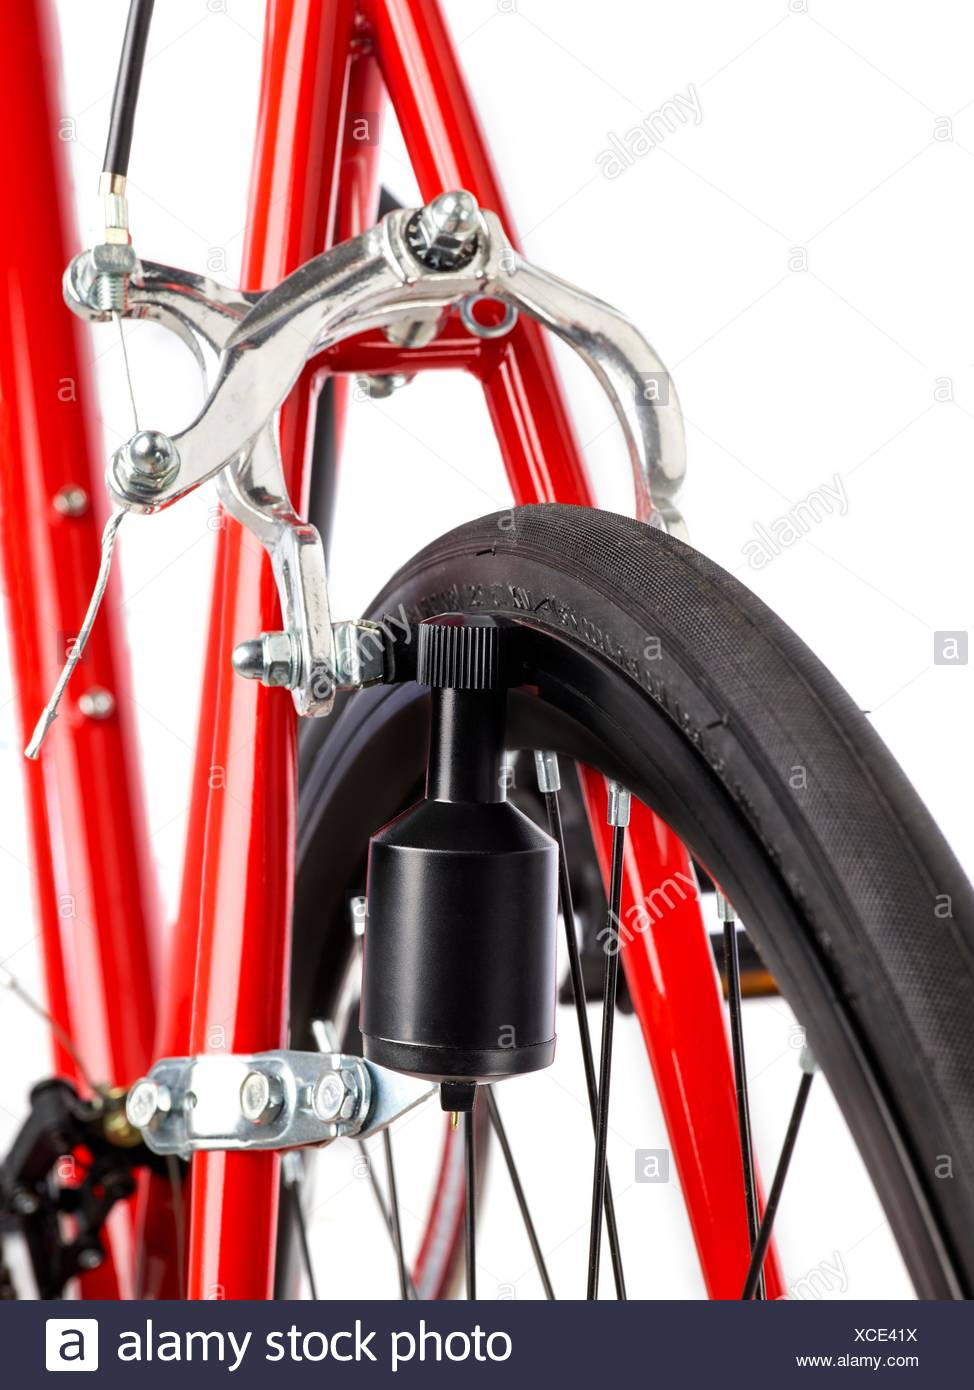 Bicycle dynamo fixed to the back wheel, close up. - Stock Image